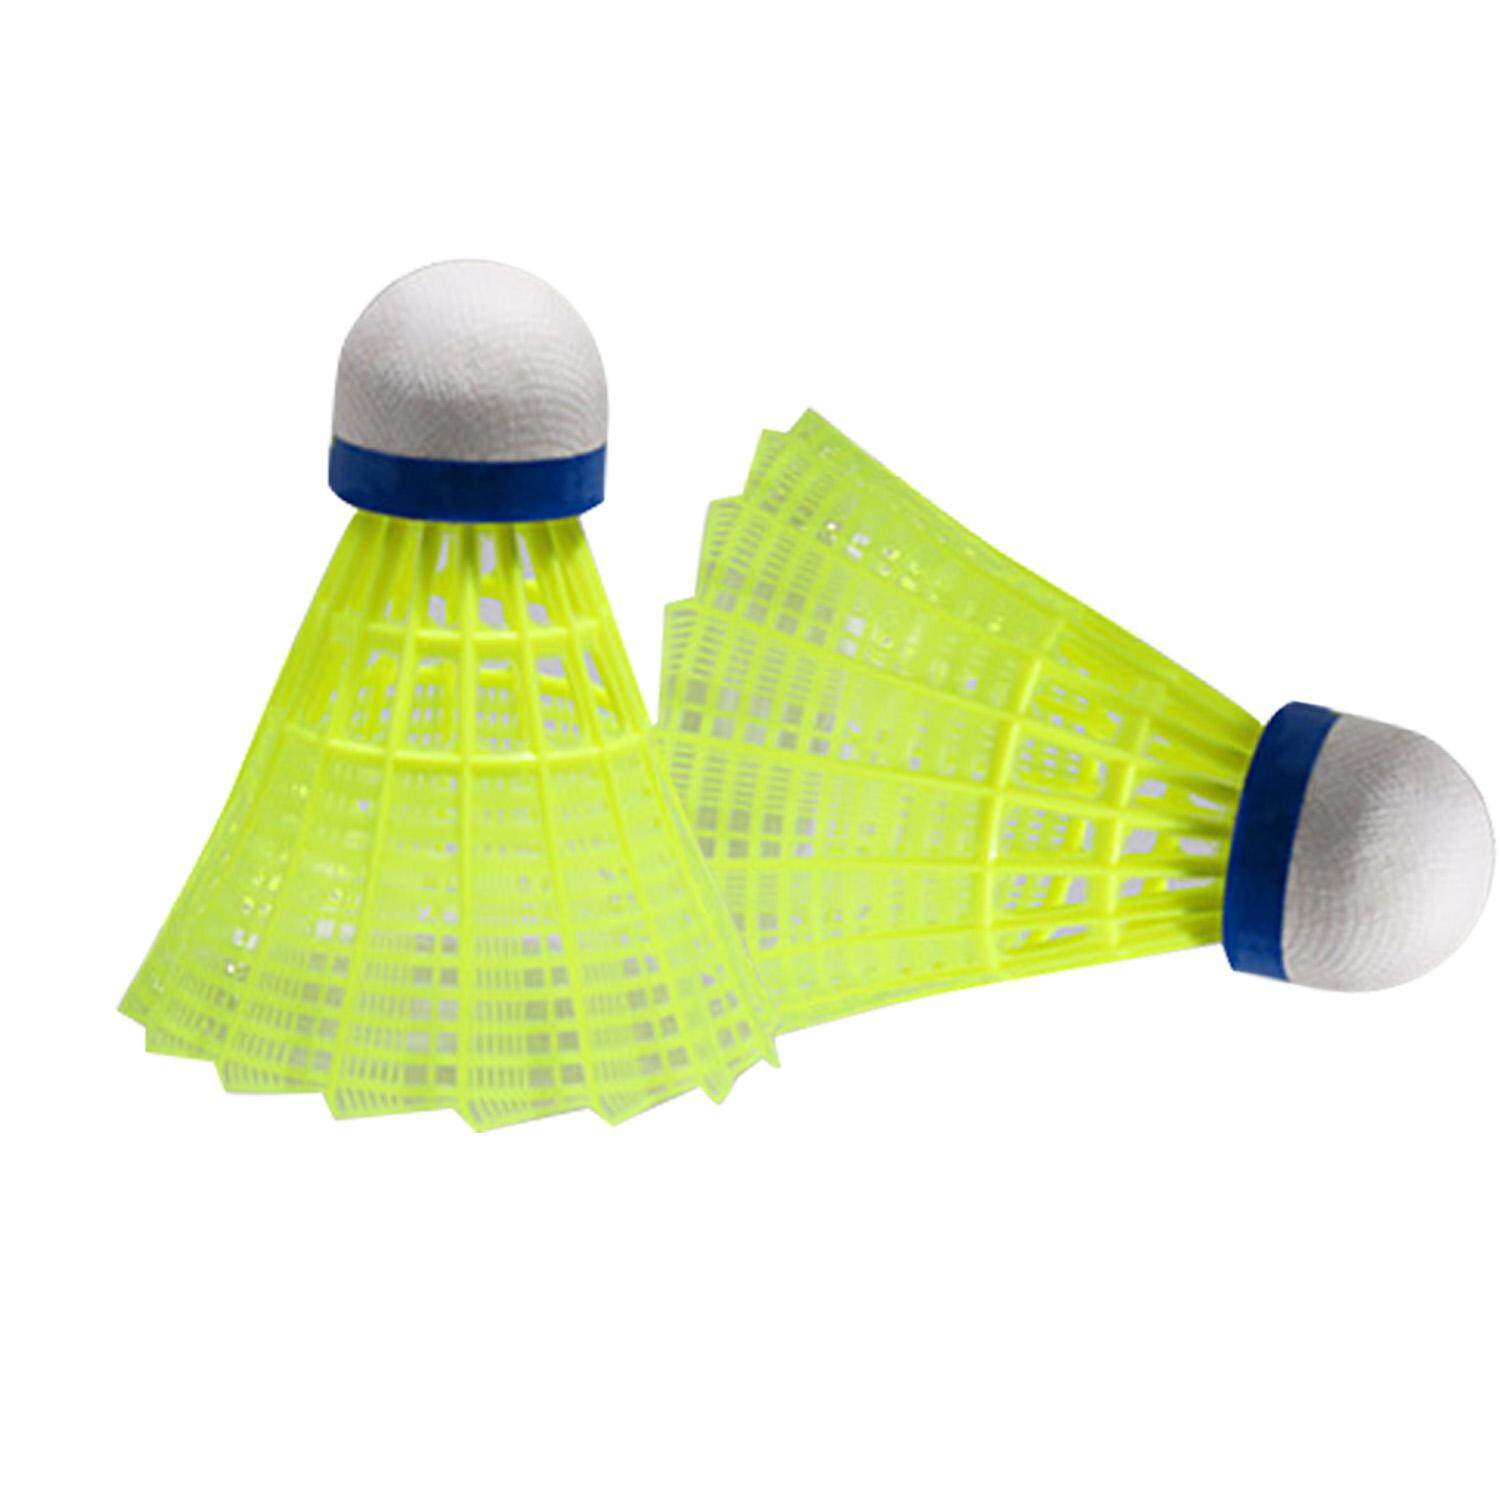 6pcs Flight Steady Balance Badminton Shuttlecocks For Indoor Outdoor Exercise Sports Training Games Yellow By Vococal Shop.